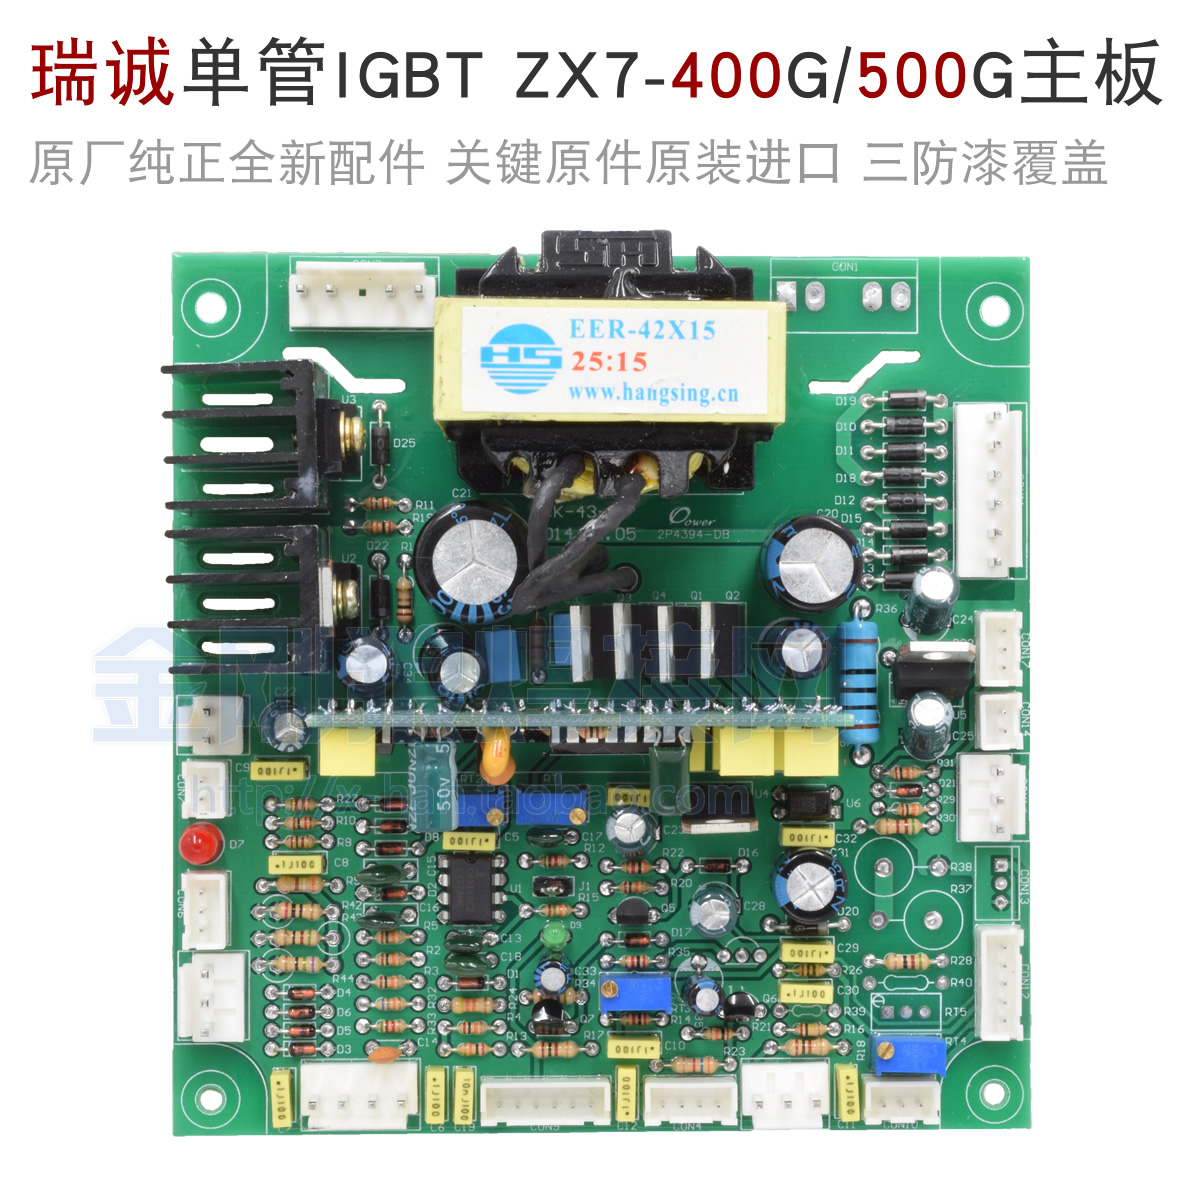 ZX7-315G 400G Control Board for IGBT Single Tube Inverter Welding MachineZX7-315G 400G Control Board for IGBT Single Tube Inverter Welding Machine